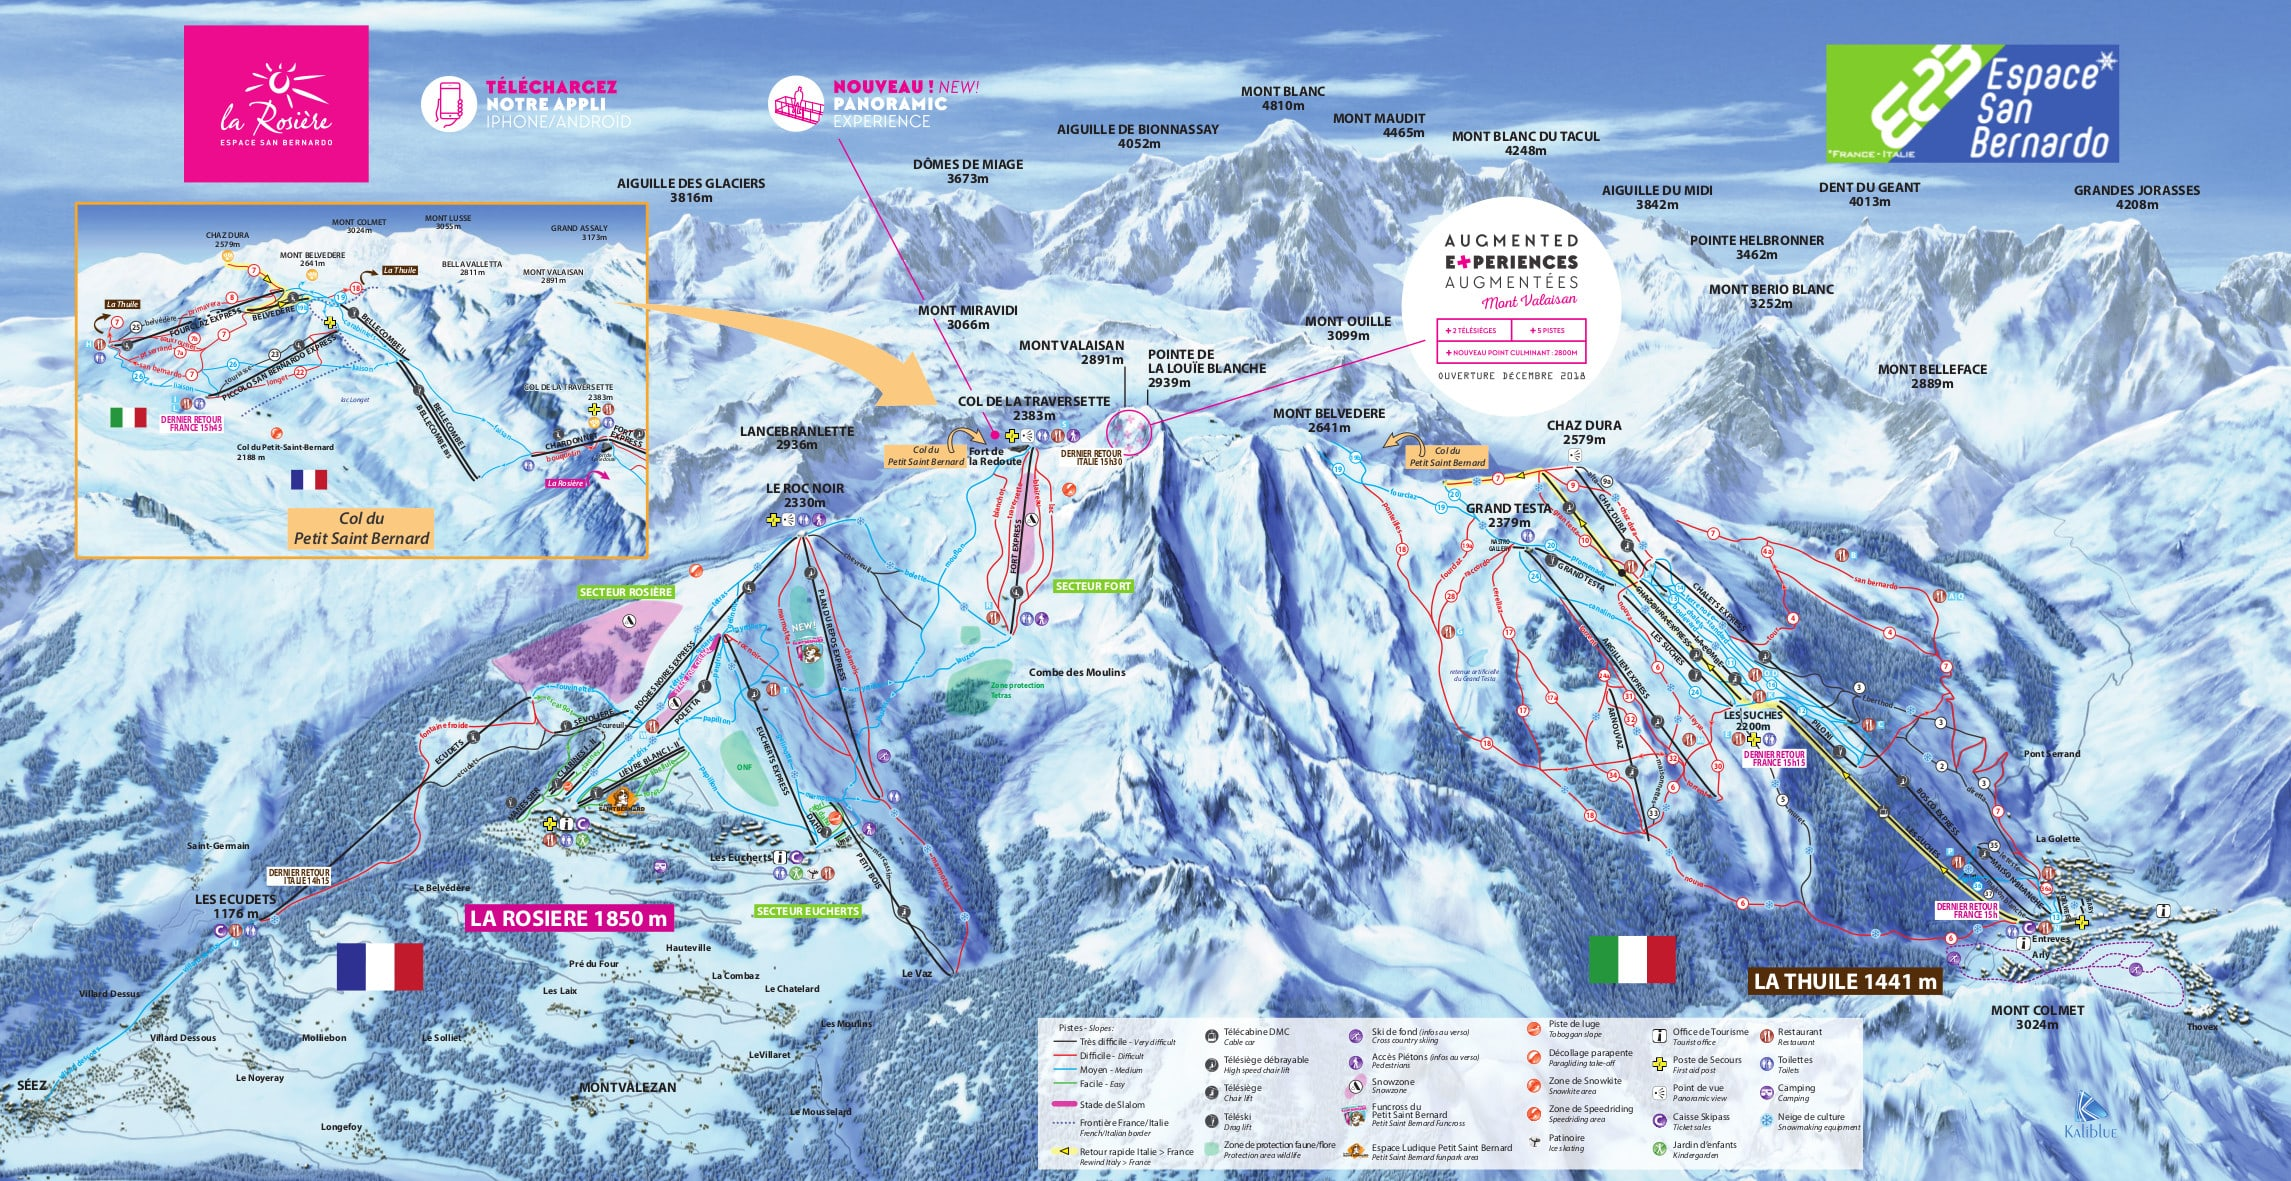 La Thuile Ski Trail Map Free Download